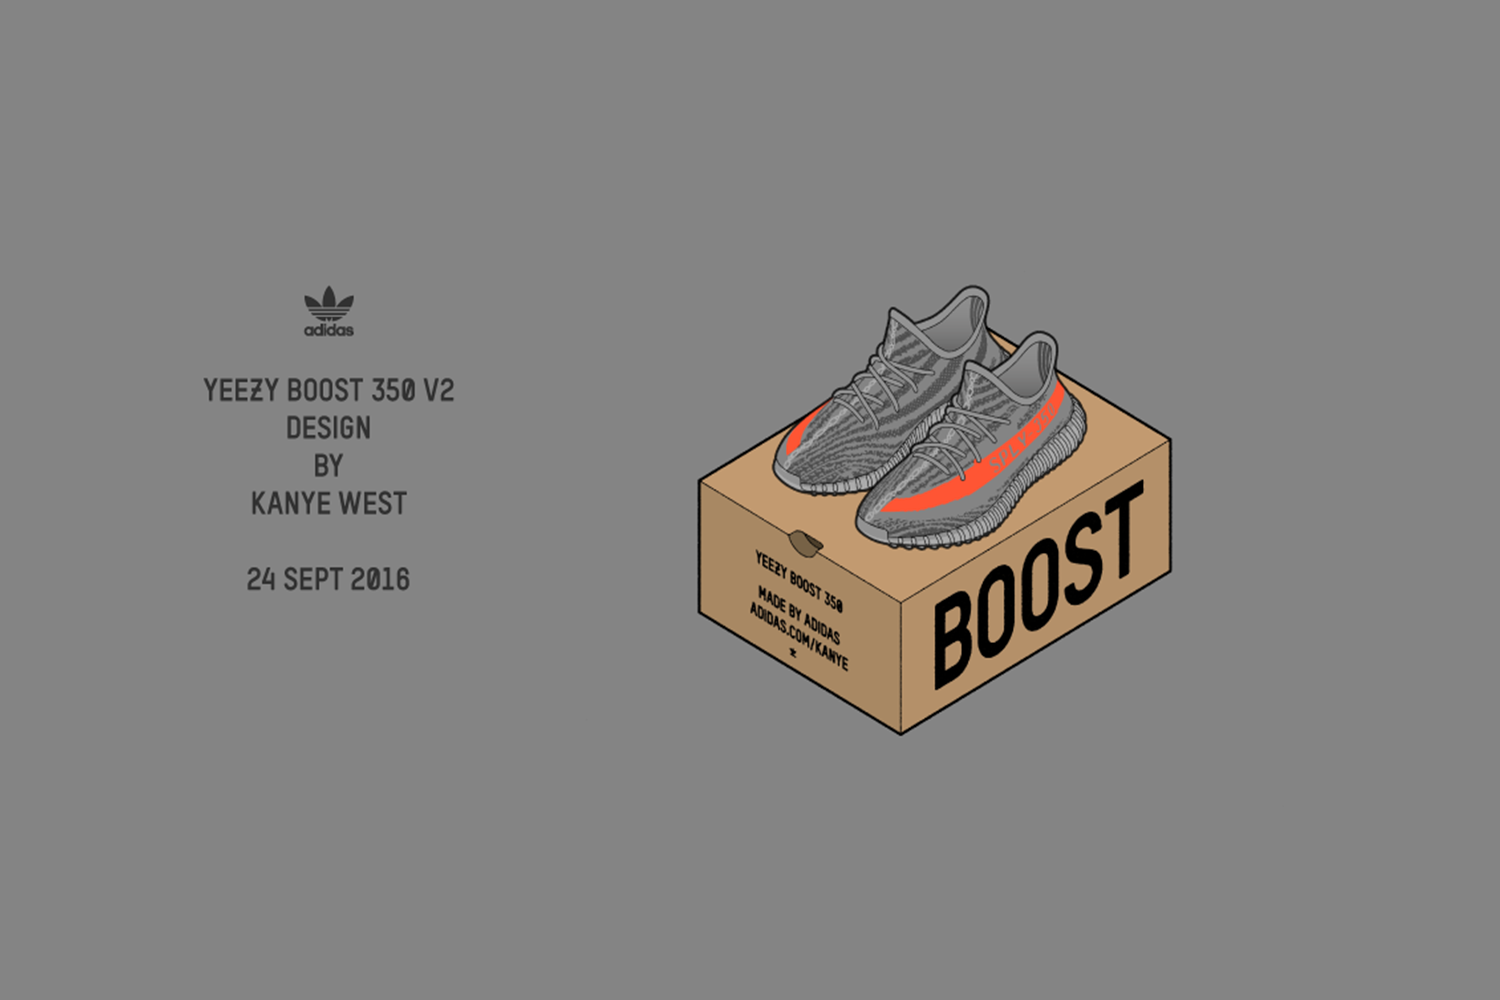 kanye west yeezy boost 350 v2 yeezy shoes 350 boost price